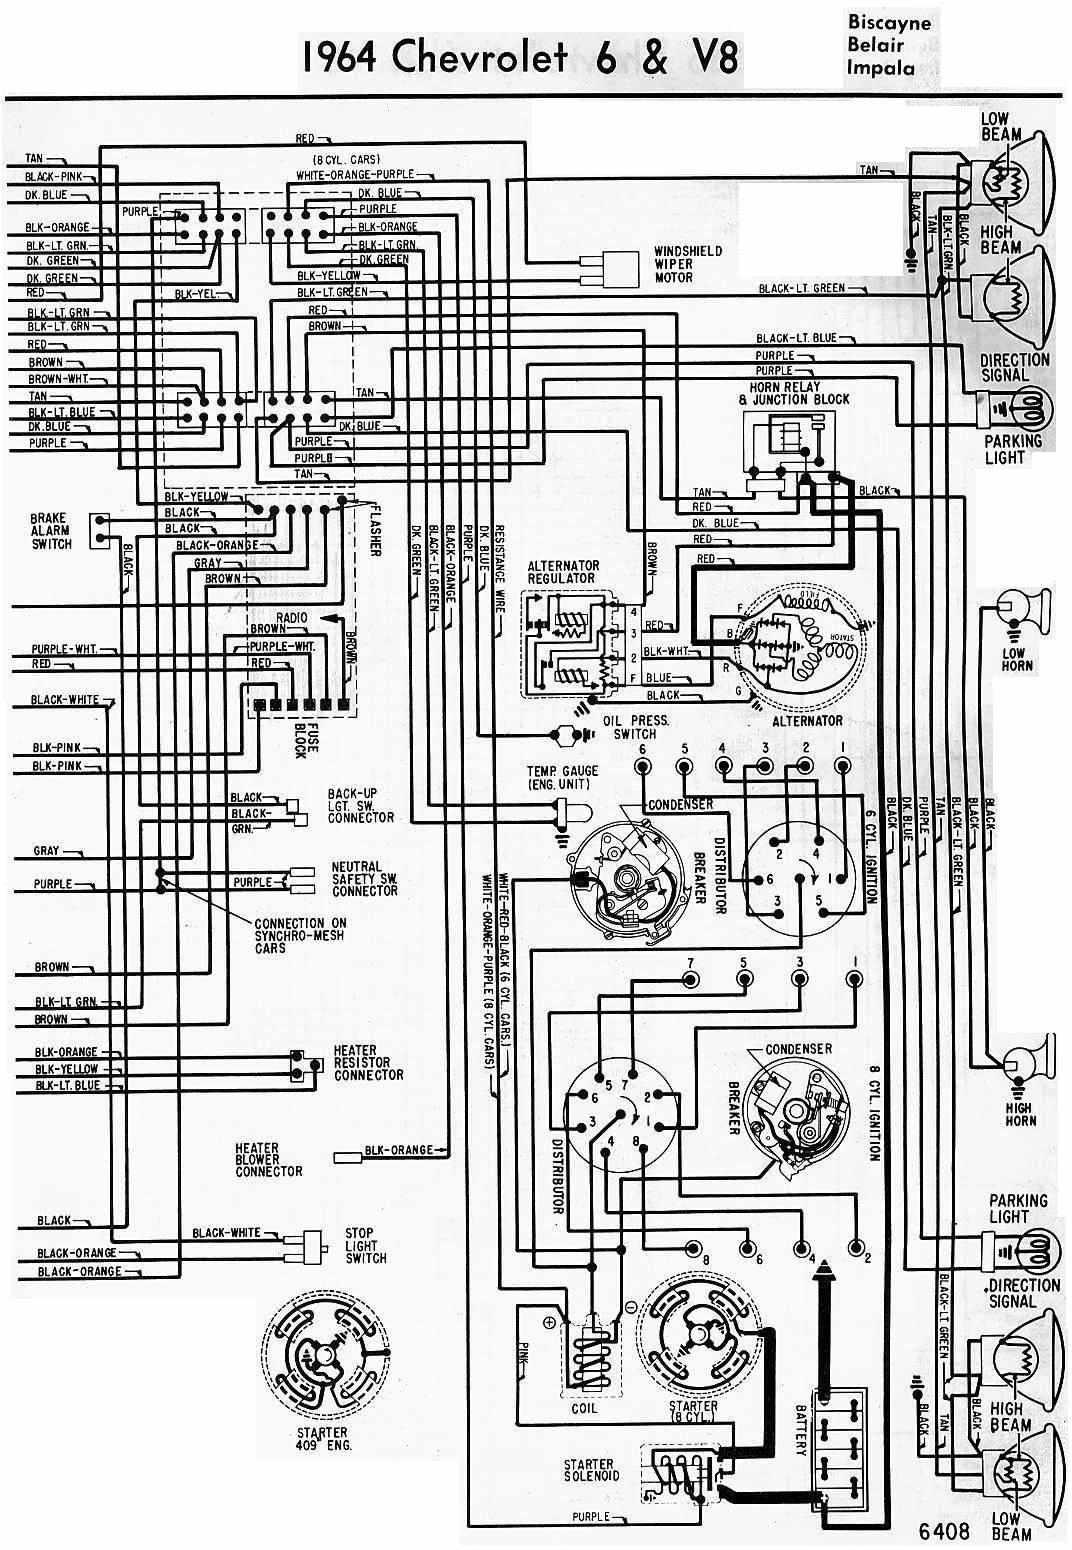 Electrical+Wiring+Diagram+Of+1964+Chevrolet+6+And+V8 1964 impala wiring diagram coil 1964 chevy nova wiring diagram 1960 chevy impala wiring diagram at crackthecode.co